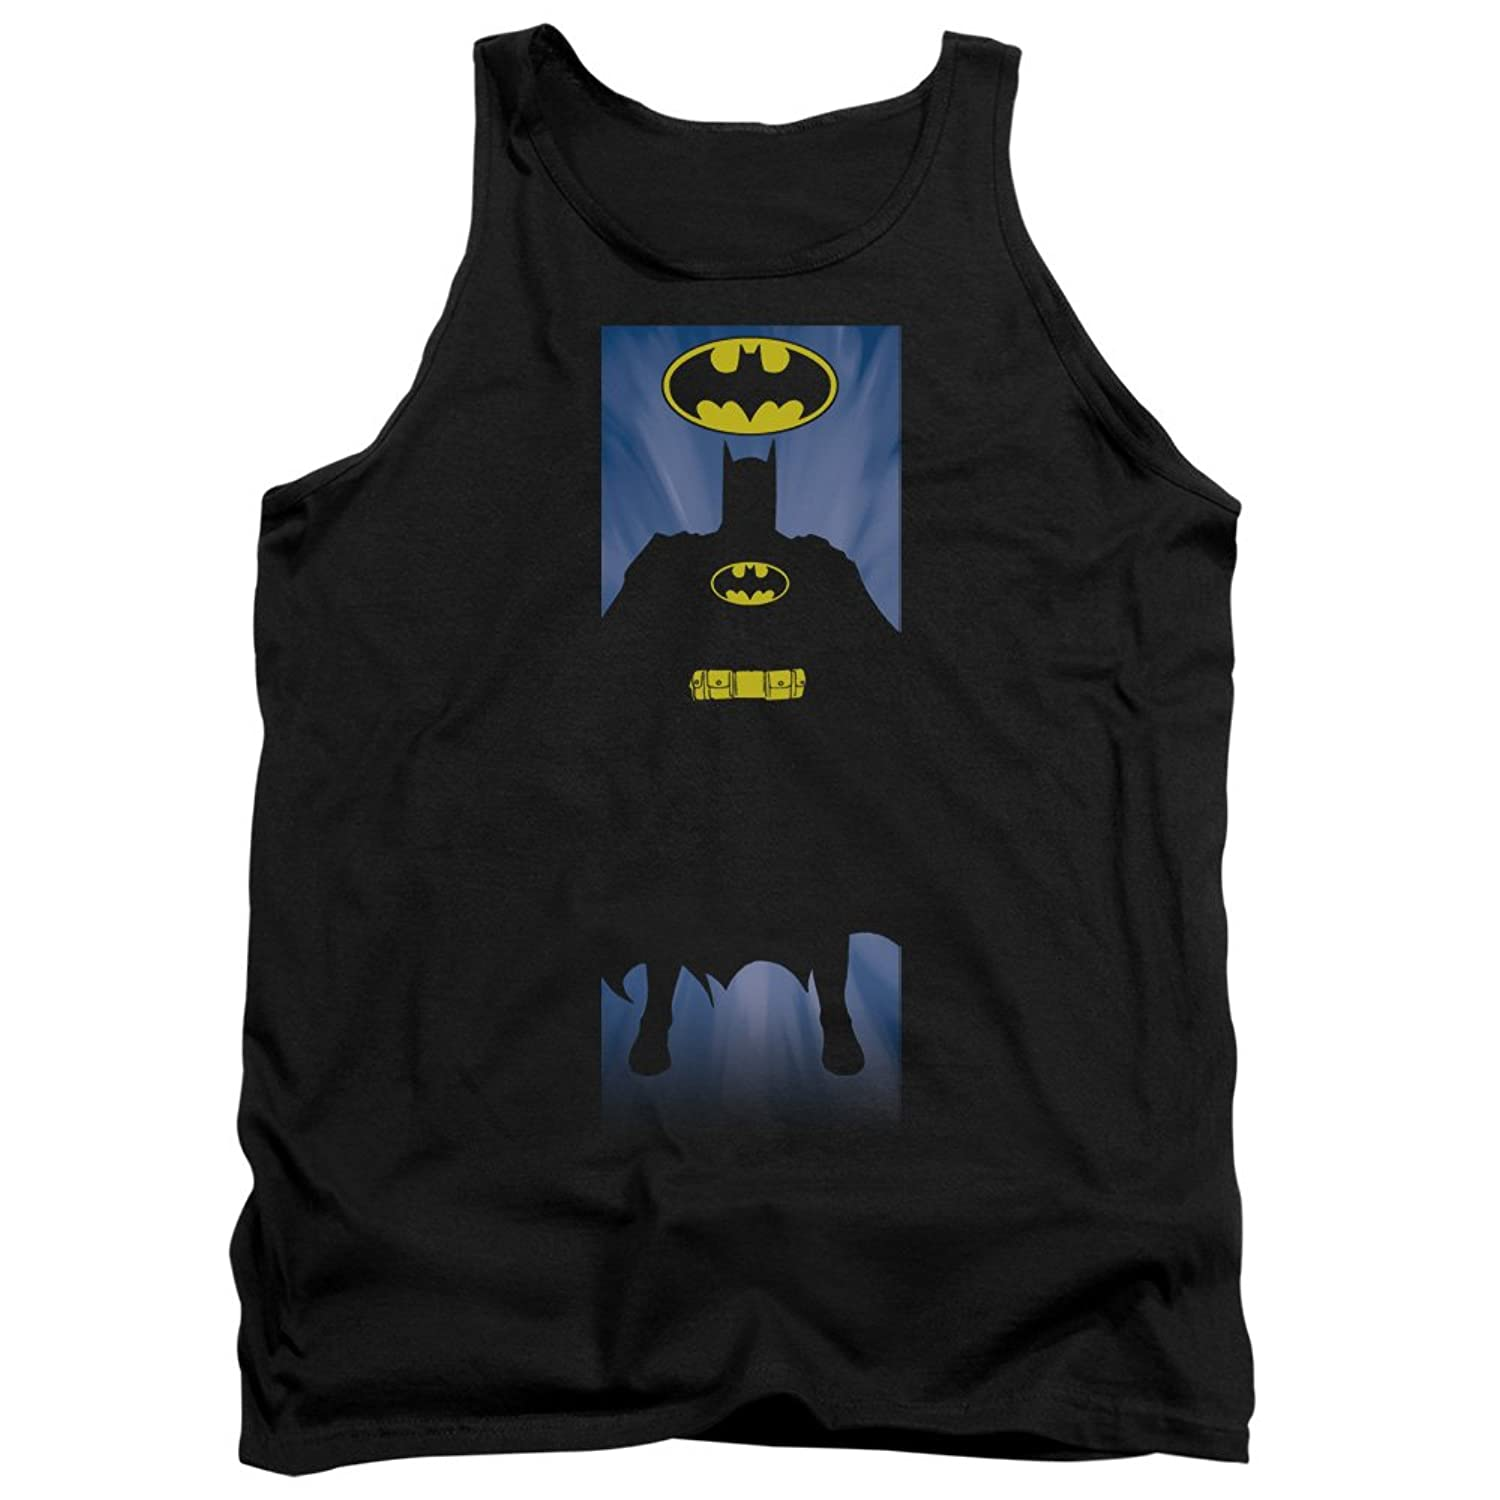 Batman DC Comics Super Silhouette Block Multi-Tone Backdrop Adult Tank Top Shirt